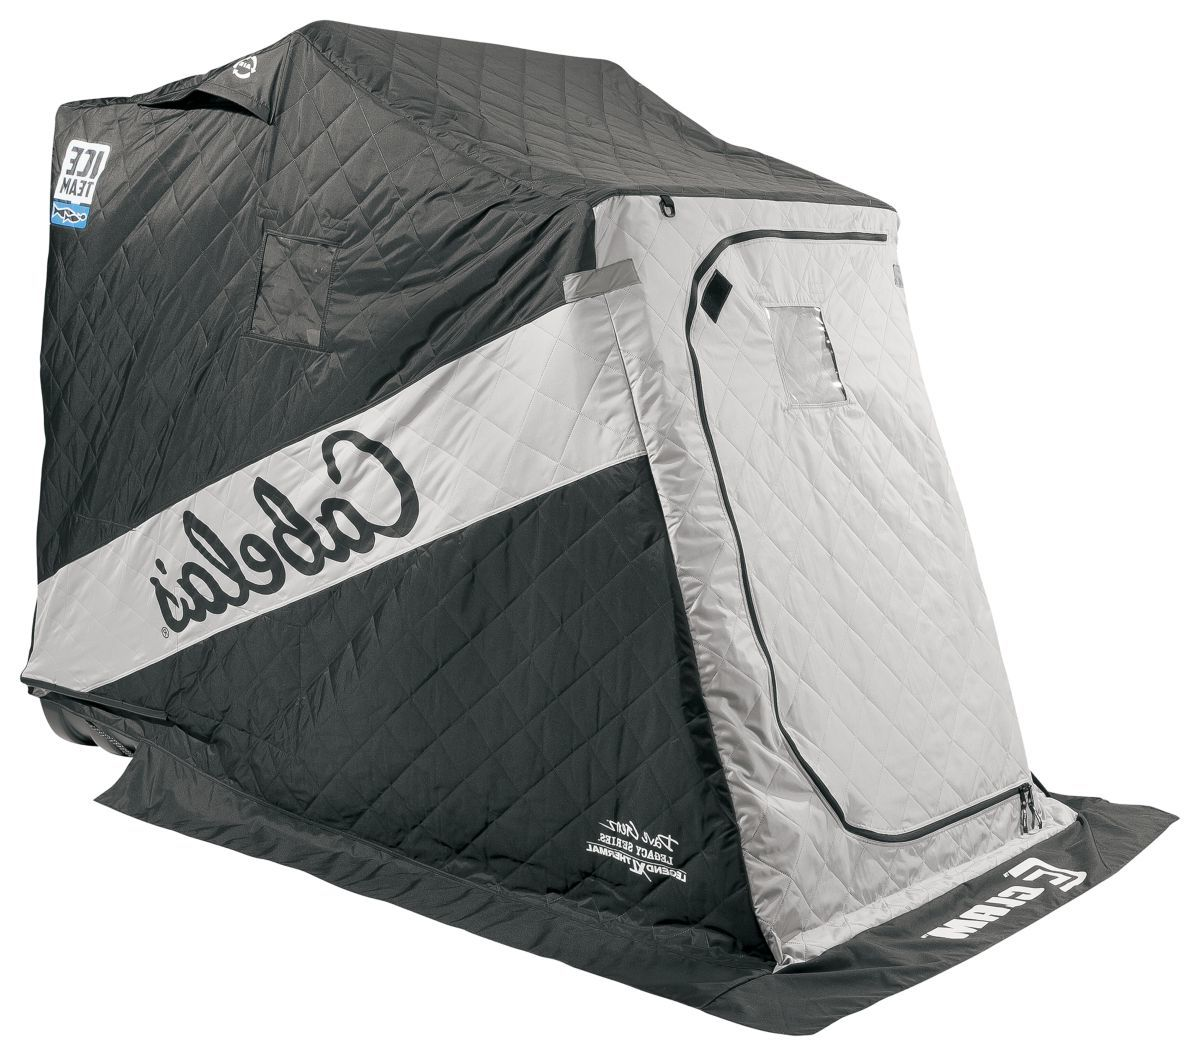 Cabela's® Legend XL Ice Team Ice-Fishing Shelter by Clam Outdoors